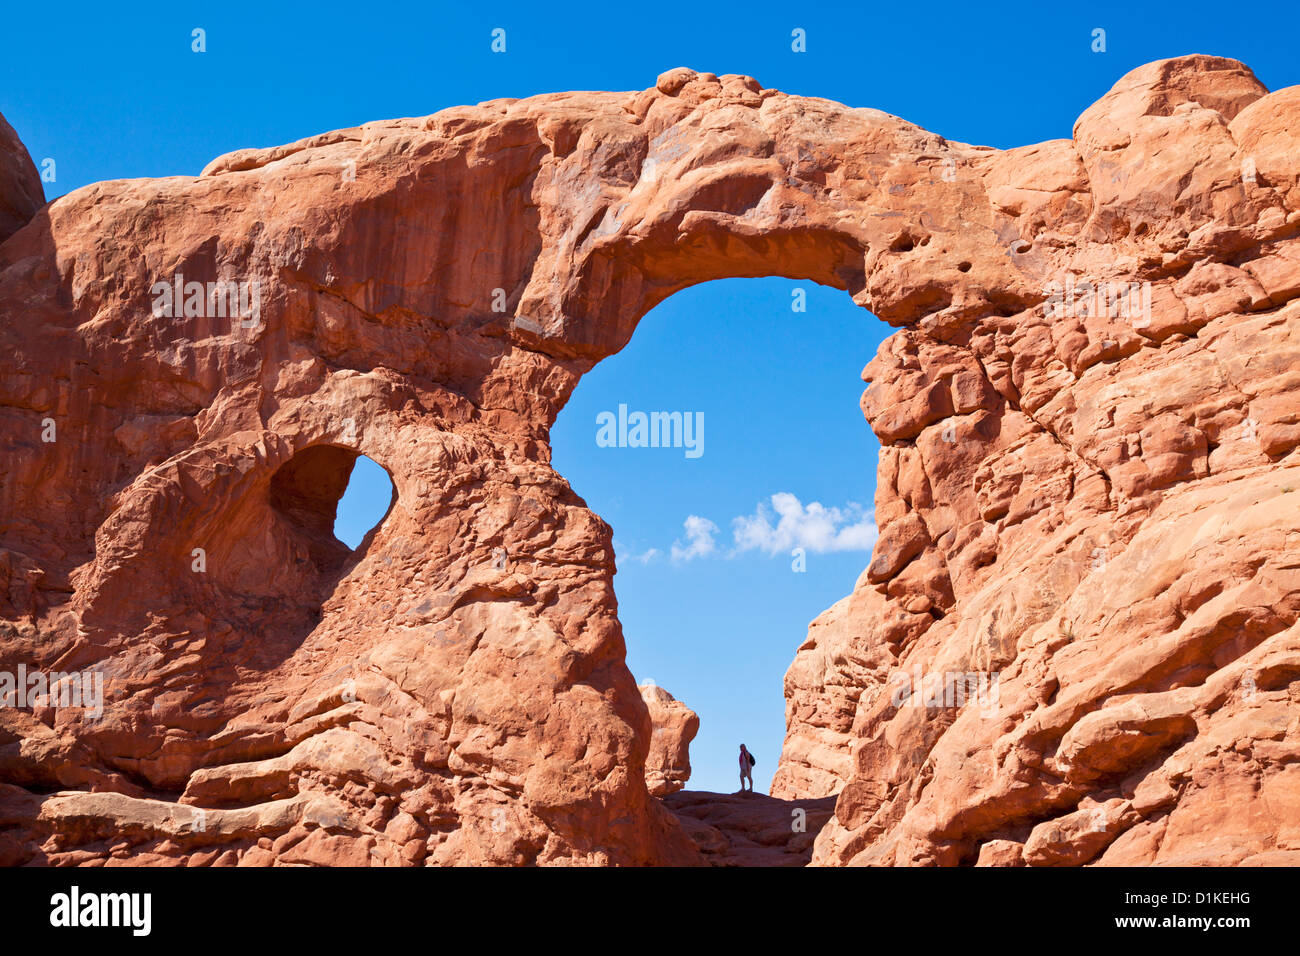 Tourist silhouetted in Turret arch in The Windows section Arches National Park near Moab Utah USA United States Stock Photo